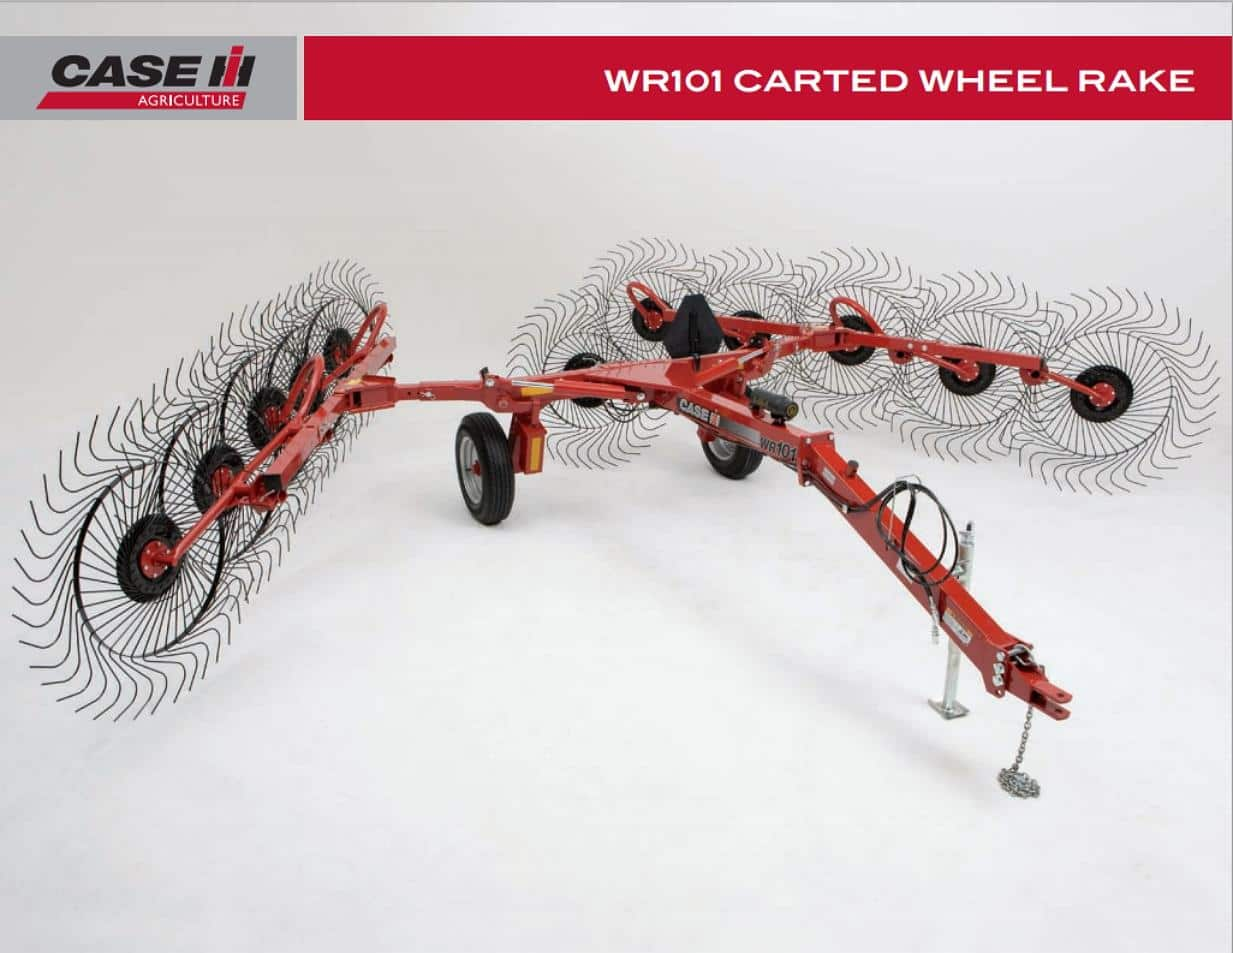 WR101 Carted Wheel Rake Spec Sheet